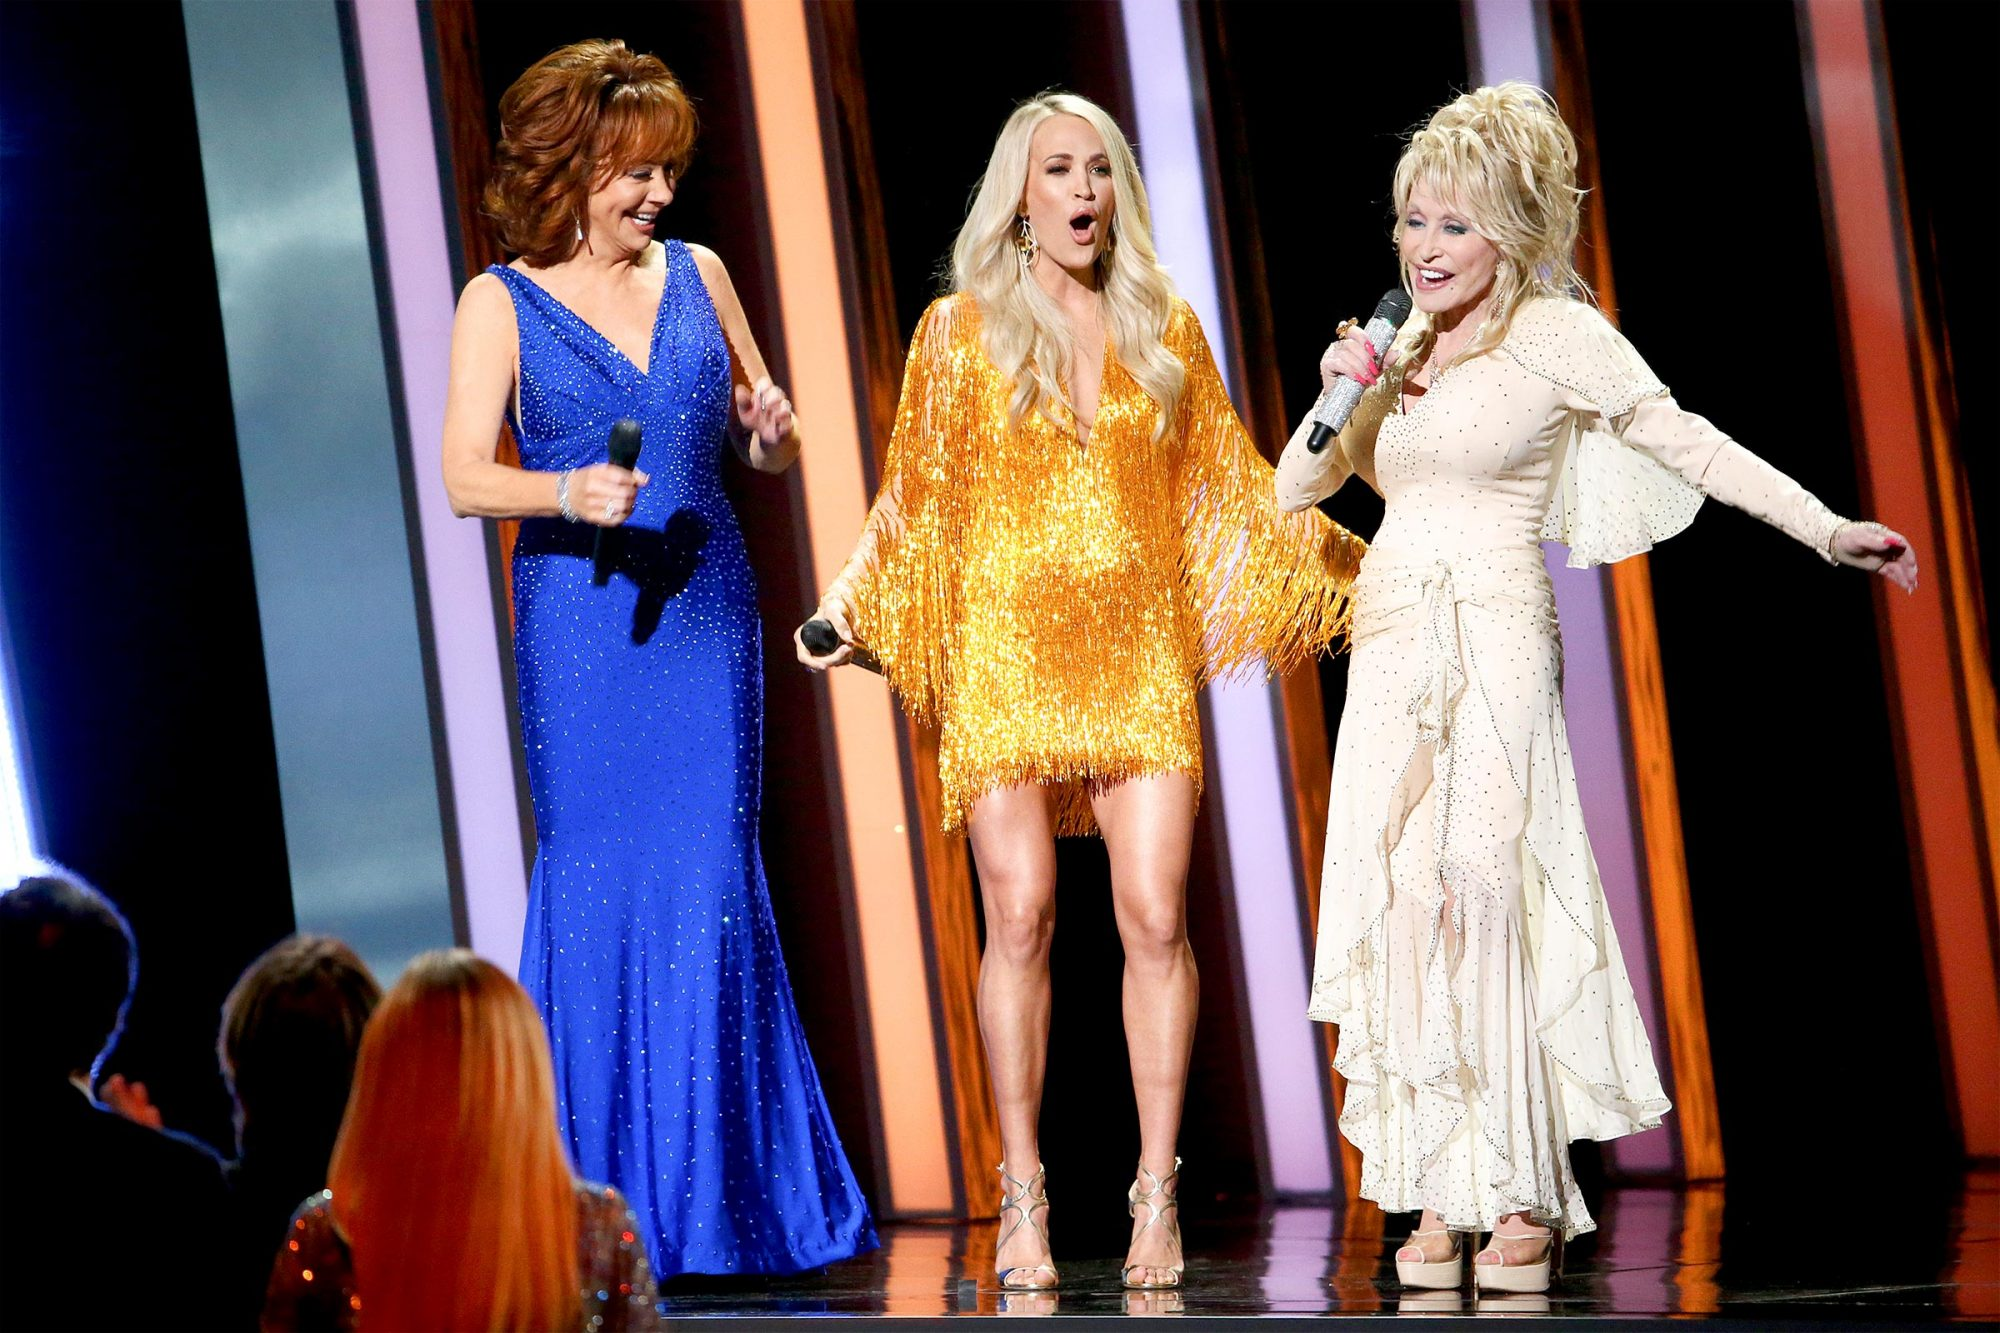 CMA Awards - Reba McEntire, Carrie Underwood, Dolly Parton